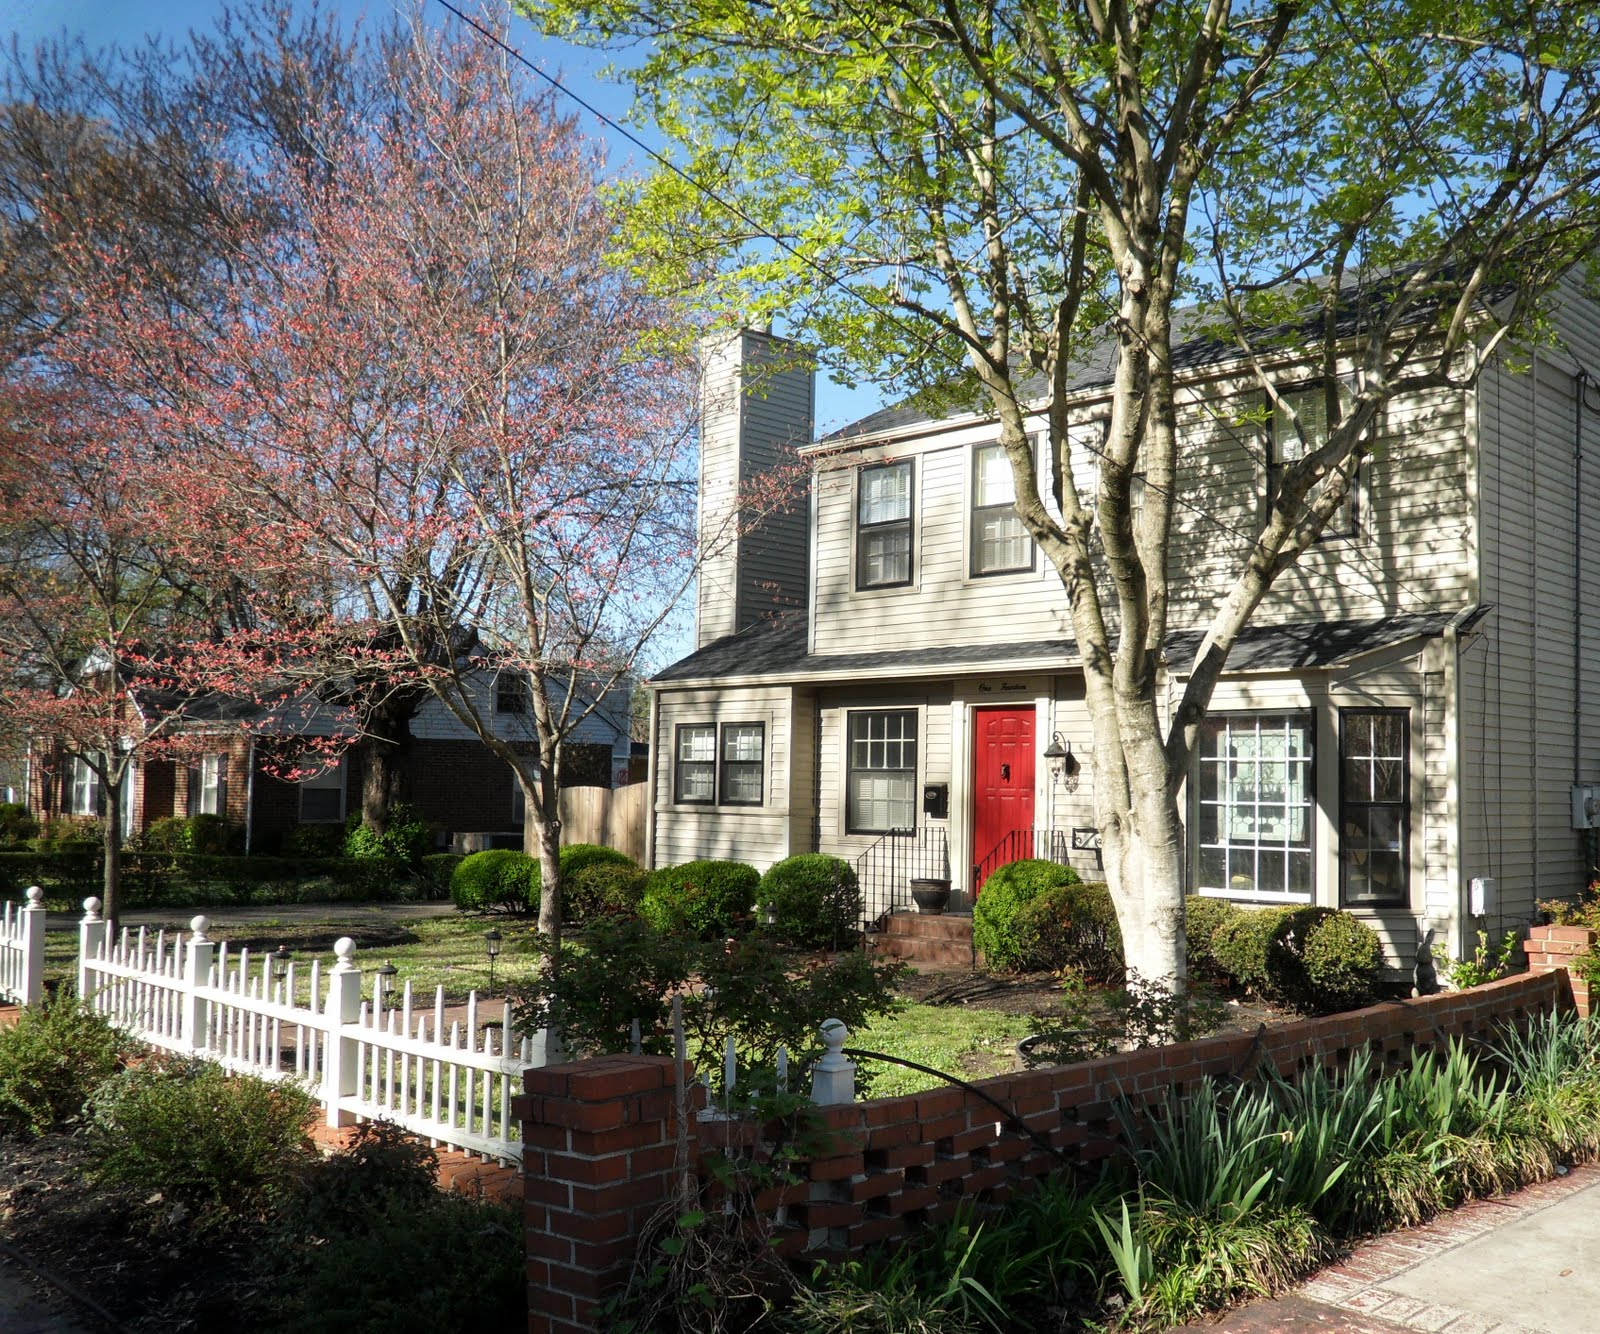 Amyable Gardens: The Front Yards & Porches Of Murfreesboro